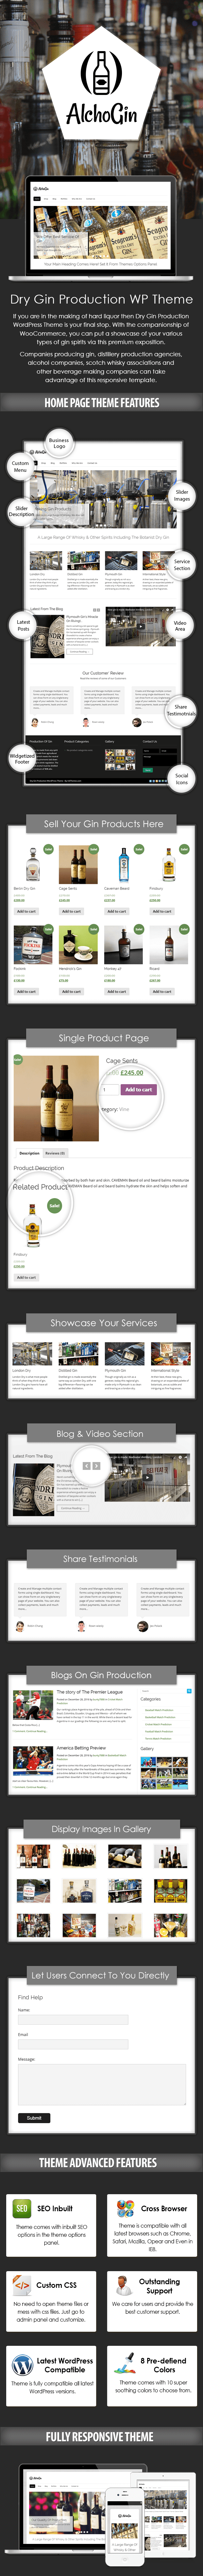 Dry Gin Production WordPress Theme